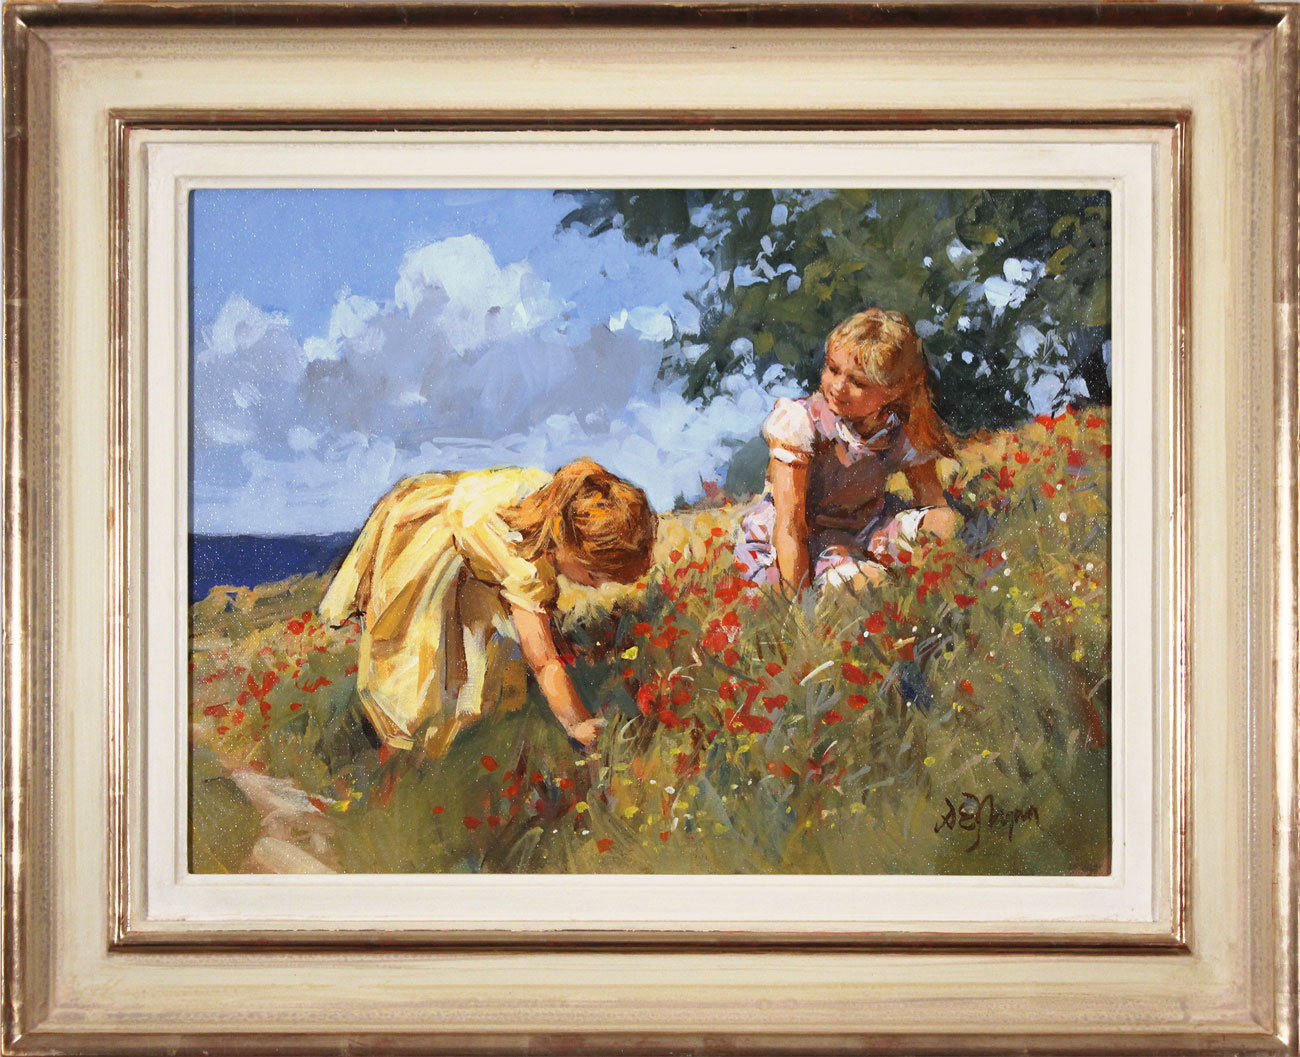 Dianne Flynn, Original acrylic painting on canvas, Maids in a Meadow. Click to enlarge